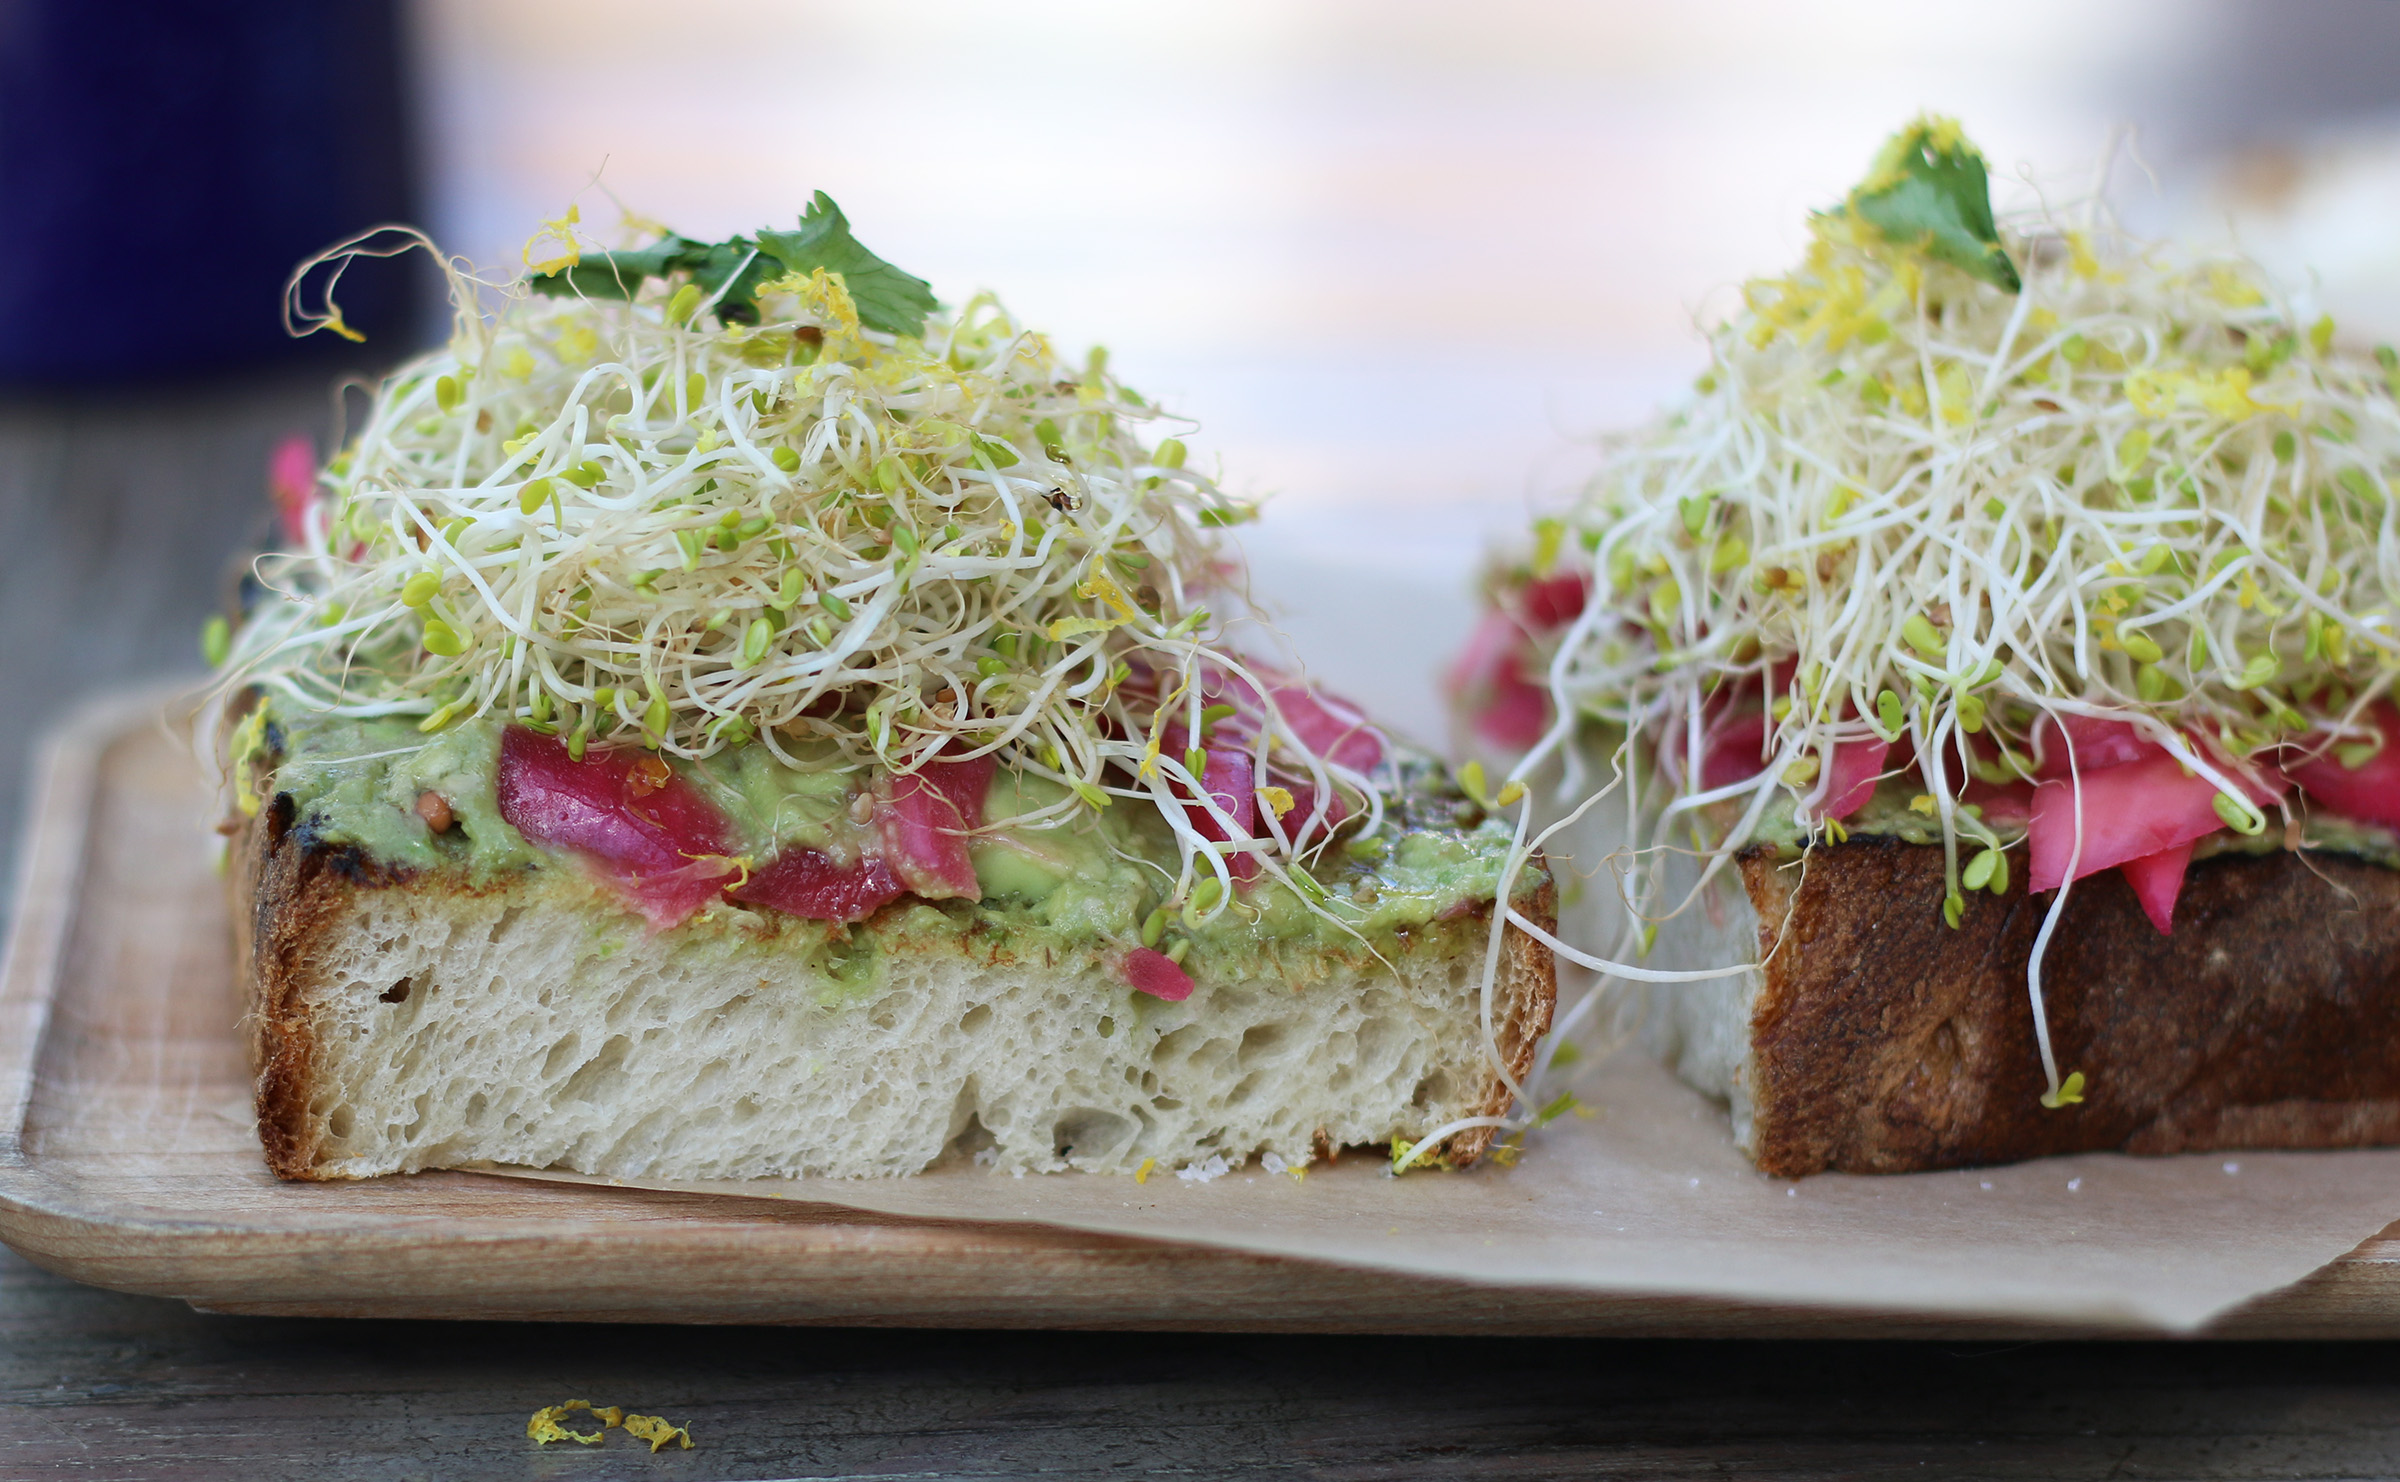 Another Avocado Toast: fresh alfalfa, tangy red onion, olive oil